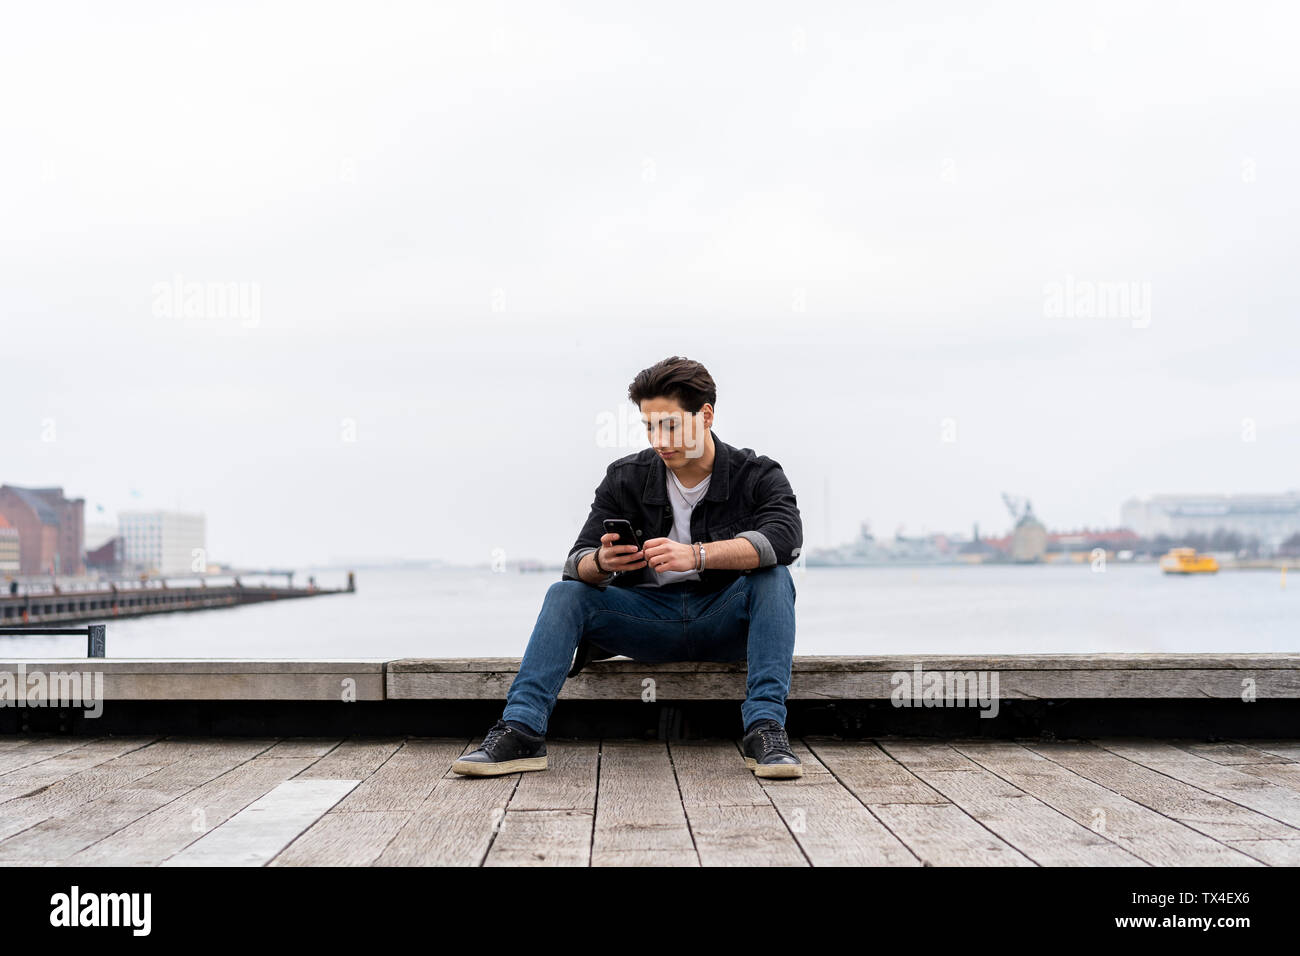 Denmark, Copenhagen, young man sitting at the waterfront using cell phone - Stock Image